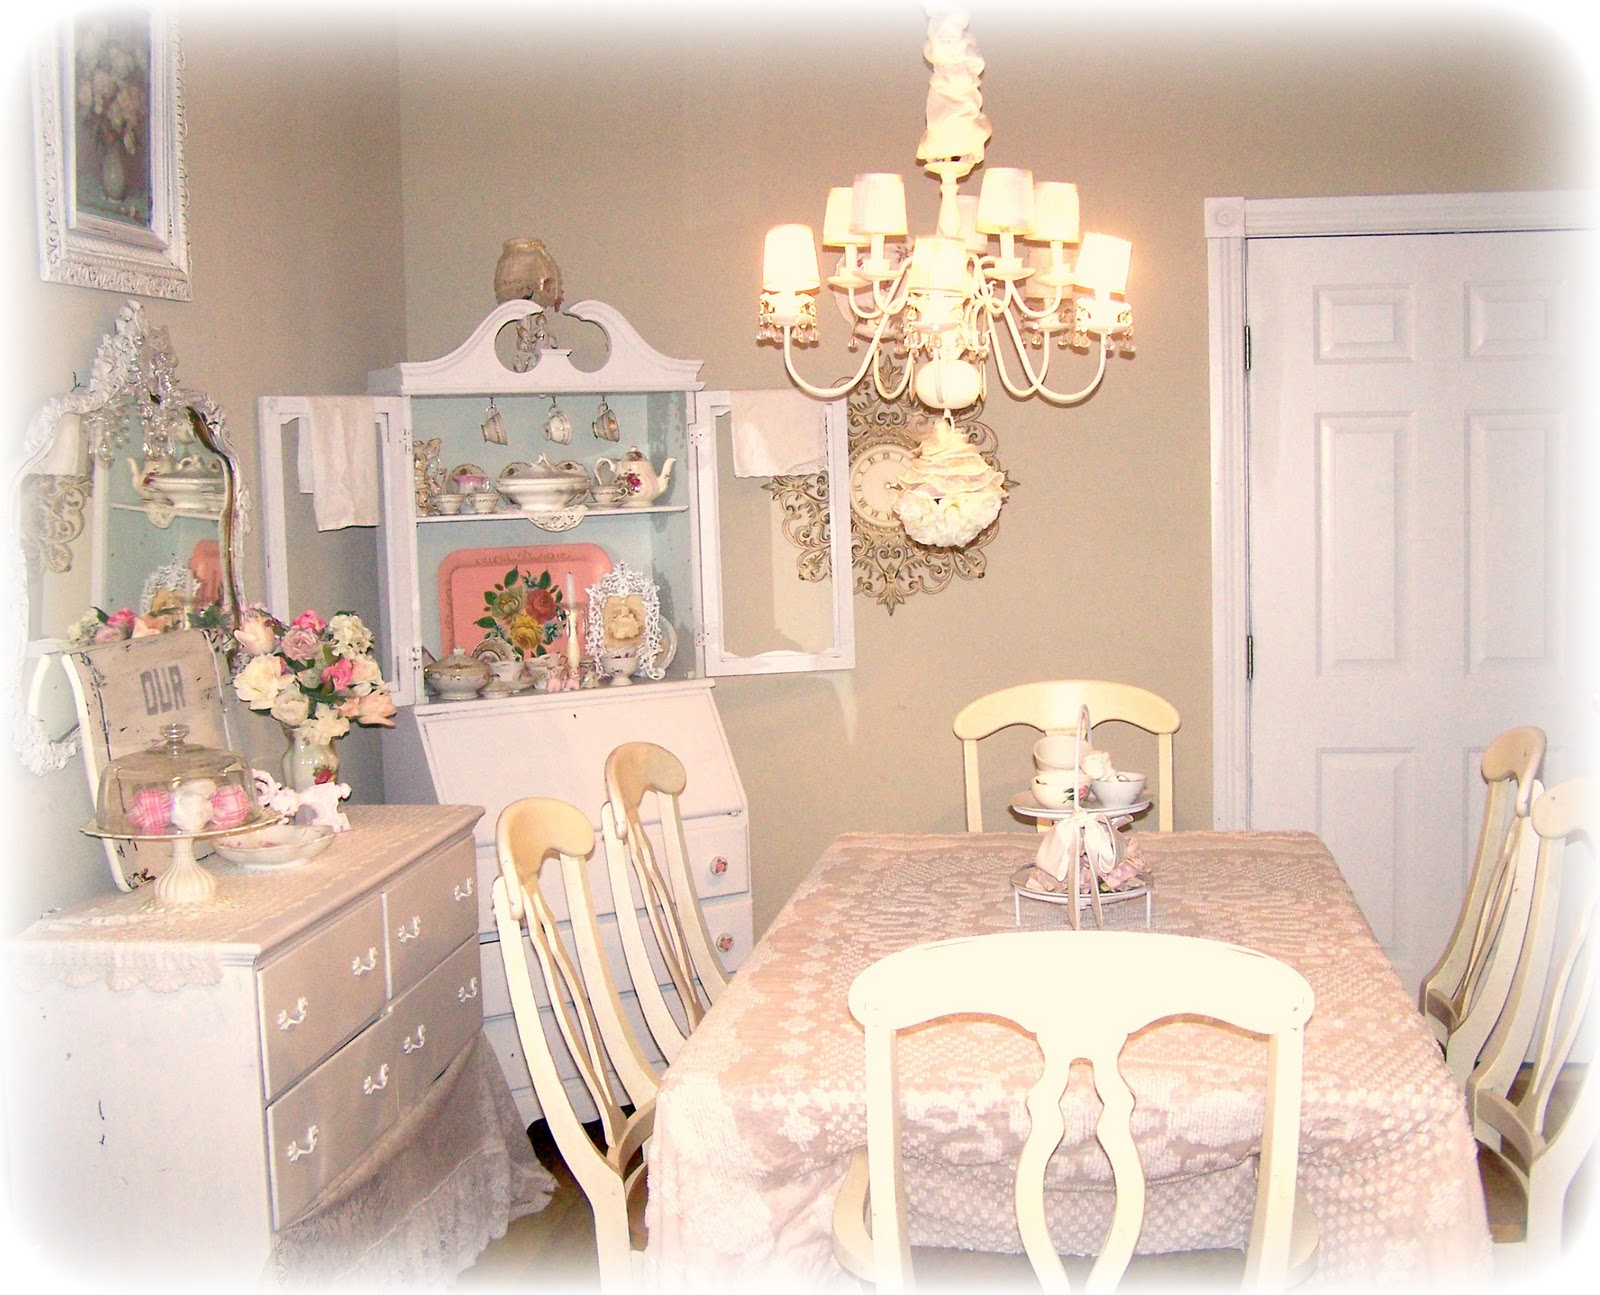 Beautiful shabby chic decorating ideas dining room light of dining room - Shabby chic dining rooms ...